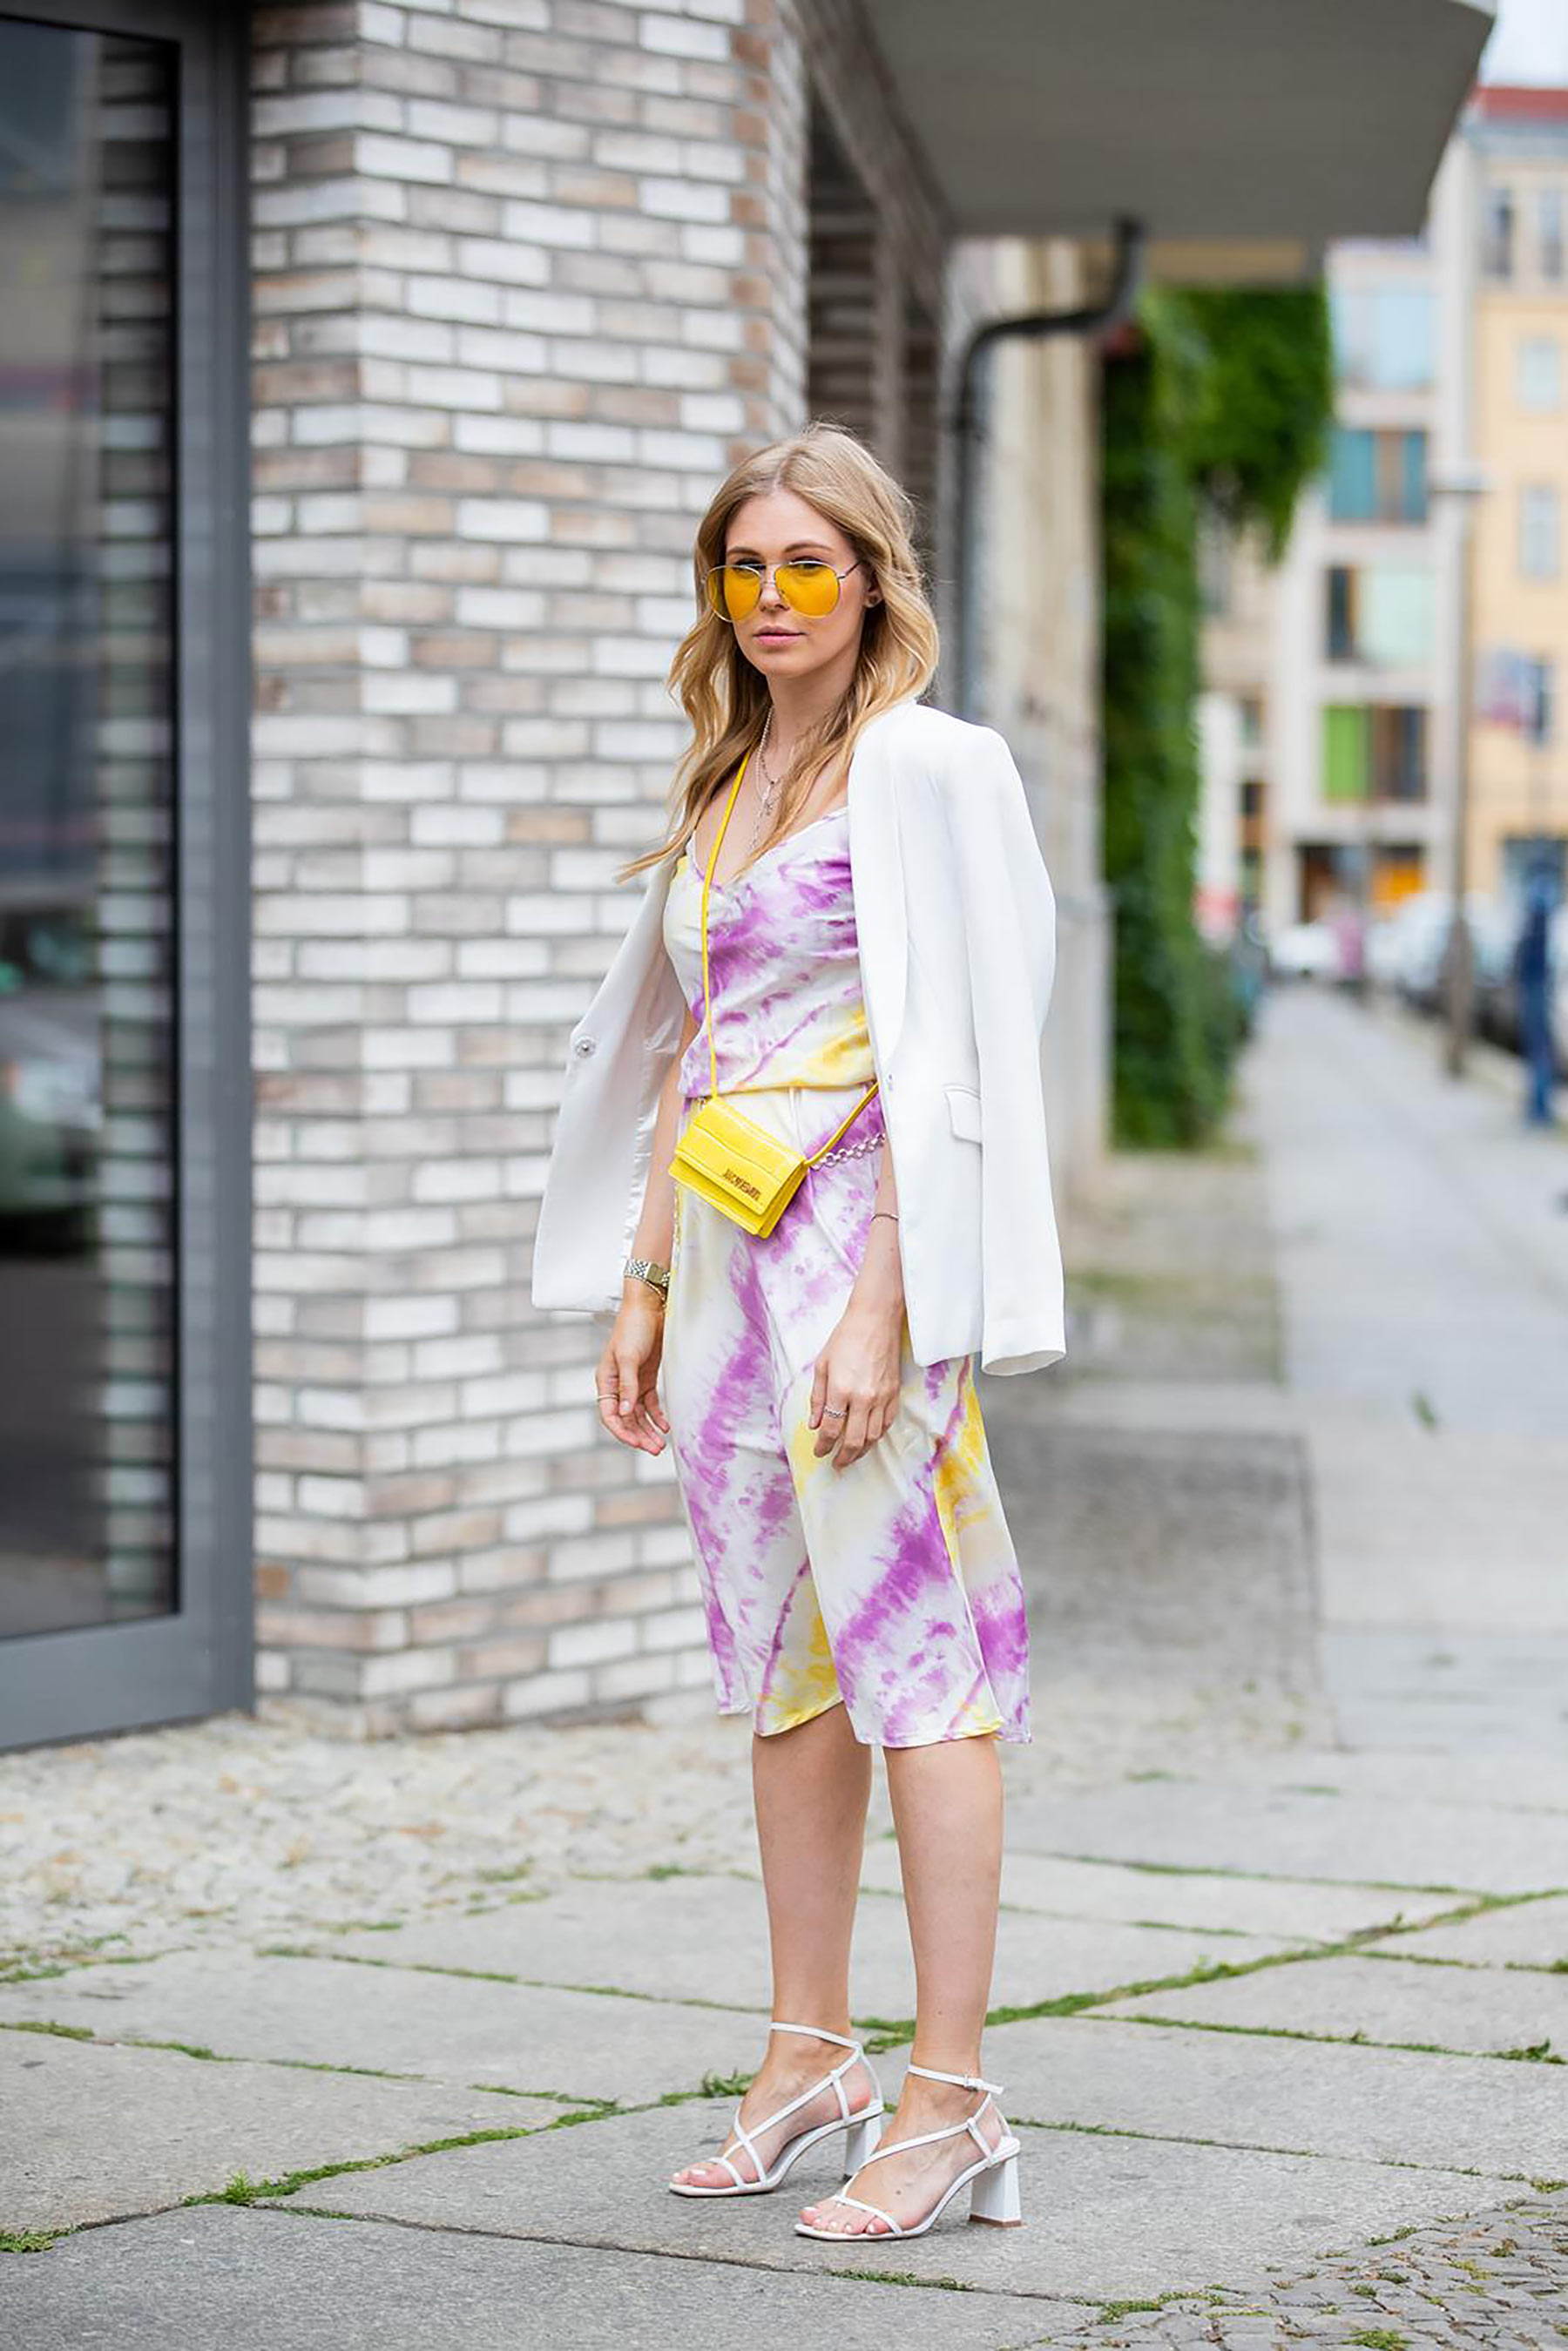 inga brauer satinkleid fashion blogger outfit berlin streetstyle